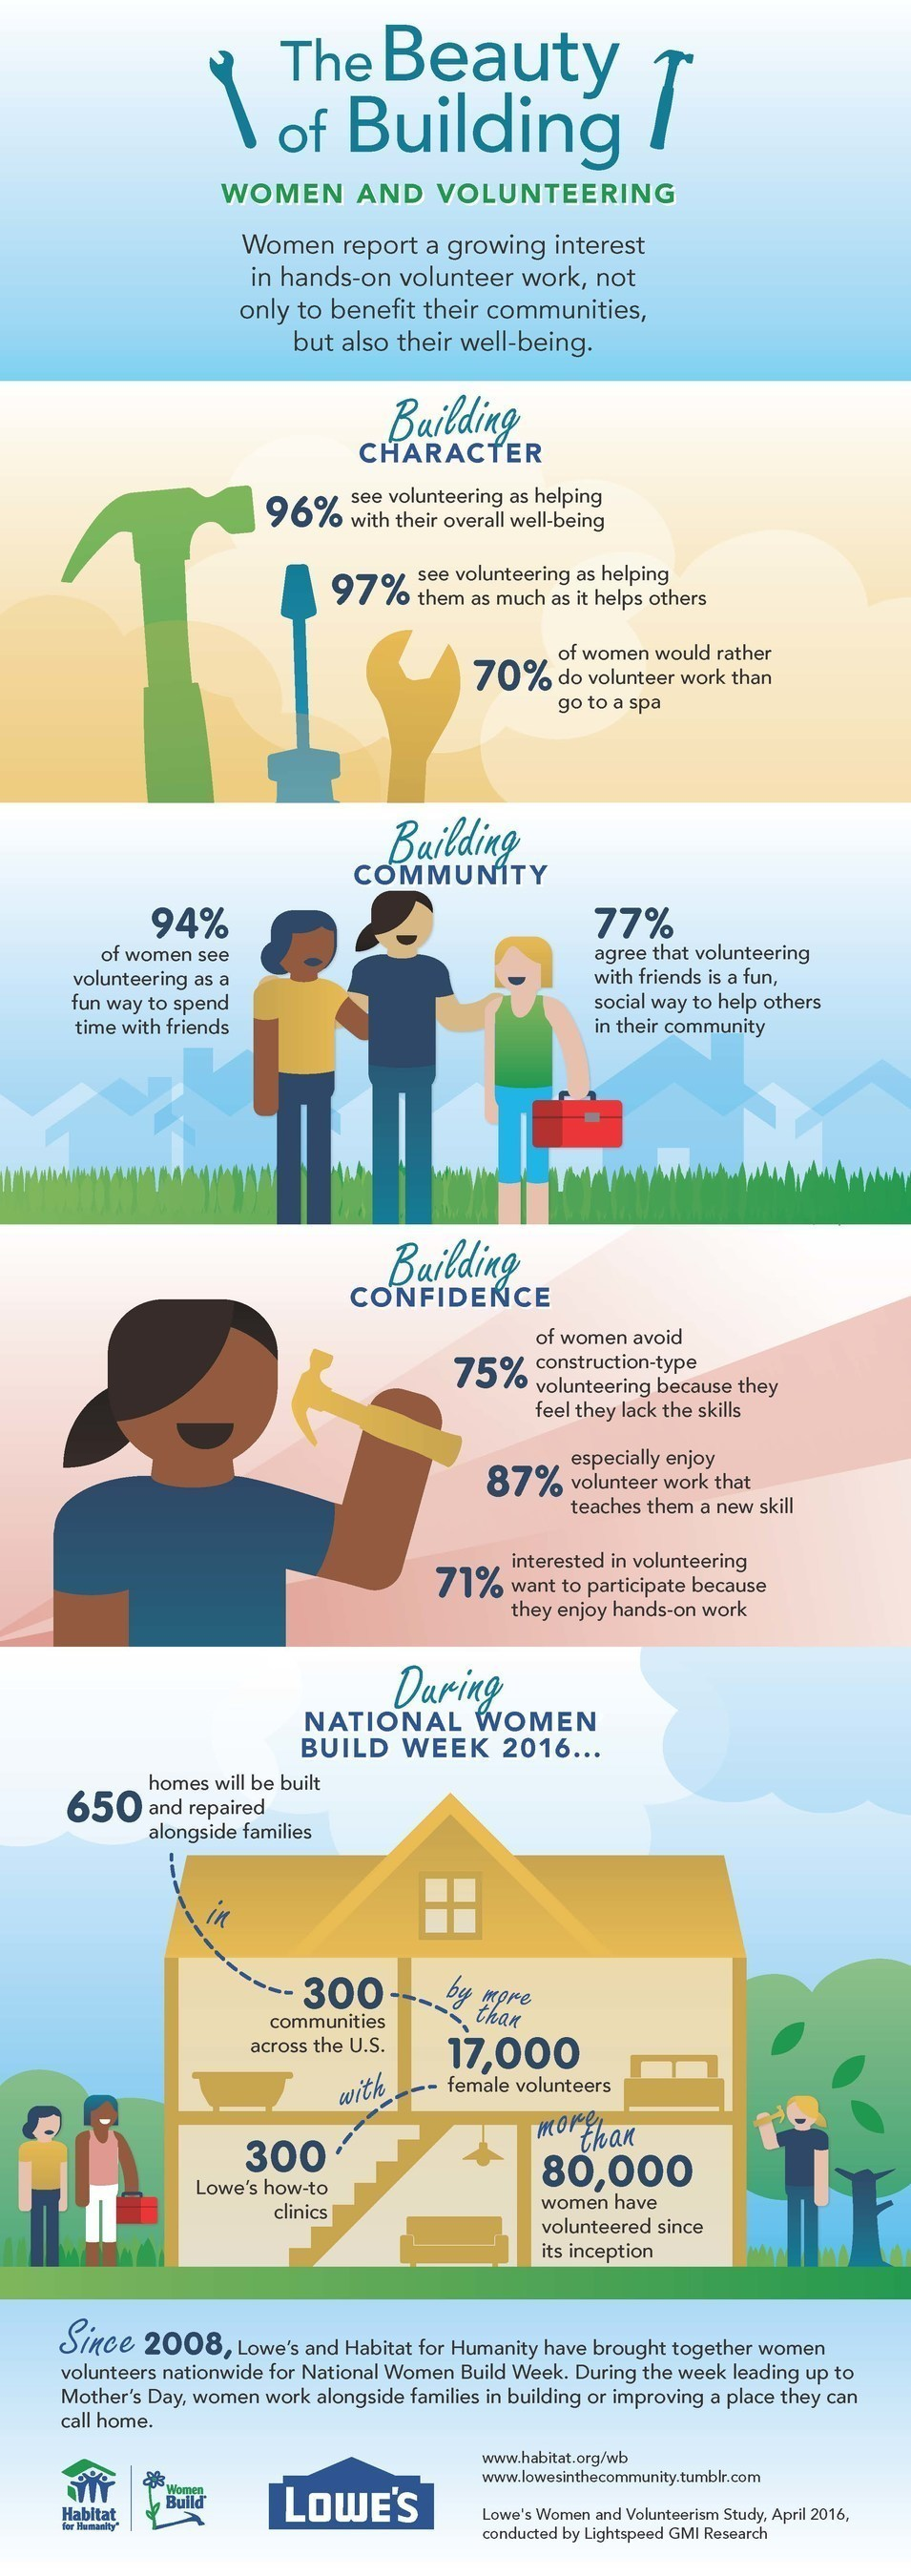 Since 2008, Habitat for Humanity and Lowe's have brought together women volunteers nationwide for National Women Build Week. The event is dedicated to empowering women while helping families build or improve a place they can call home. More than 17,000 women are expected to participate in this year's event.